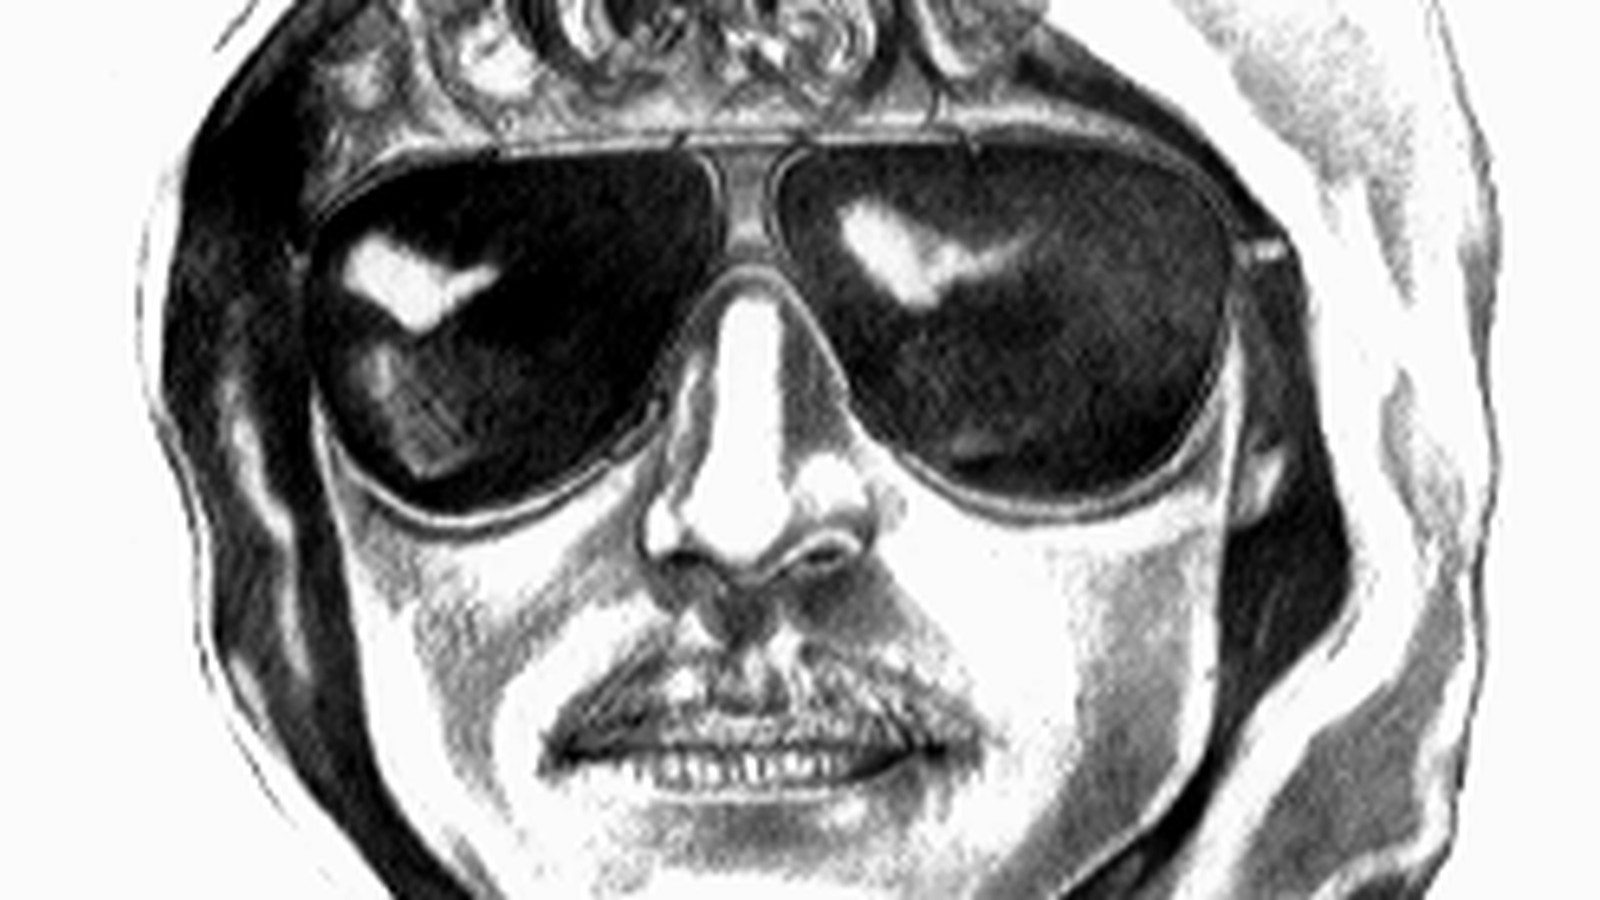 The FBI kept a list of D&D players as part of its hunt for the Unabomber